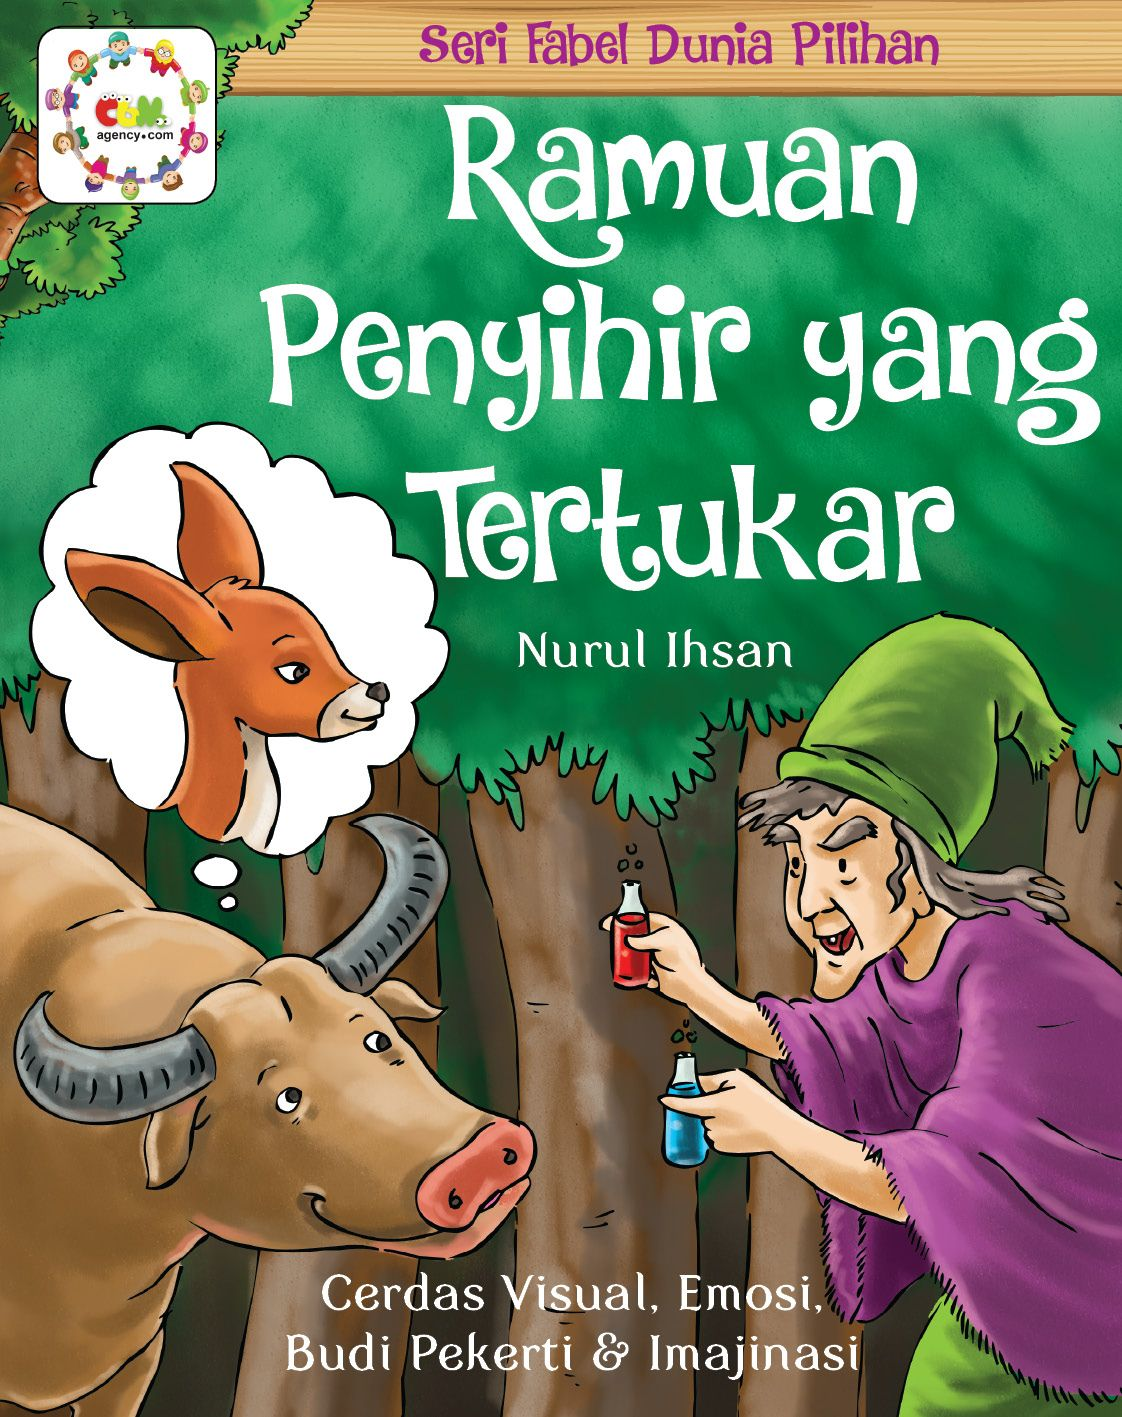 Download Gratis Lihat Petunjuk Download Seri Seri Fabel Dunia